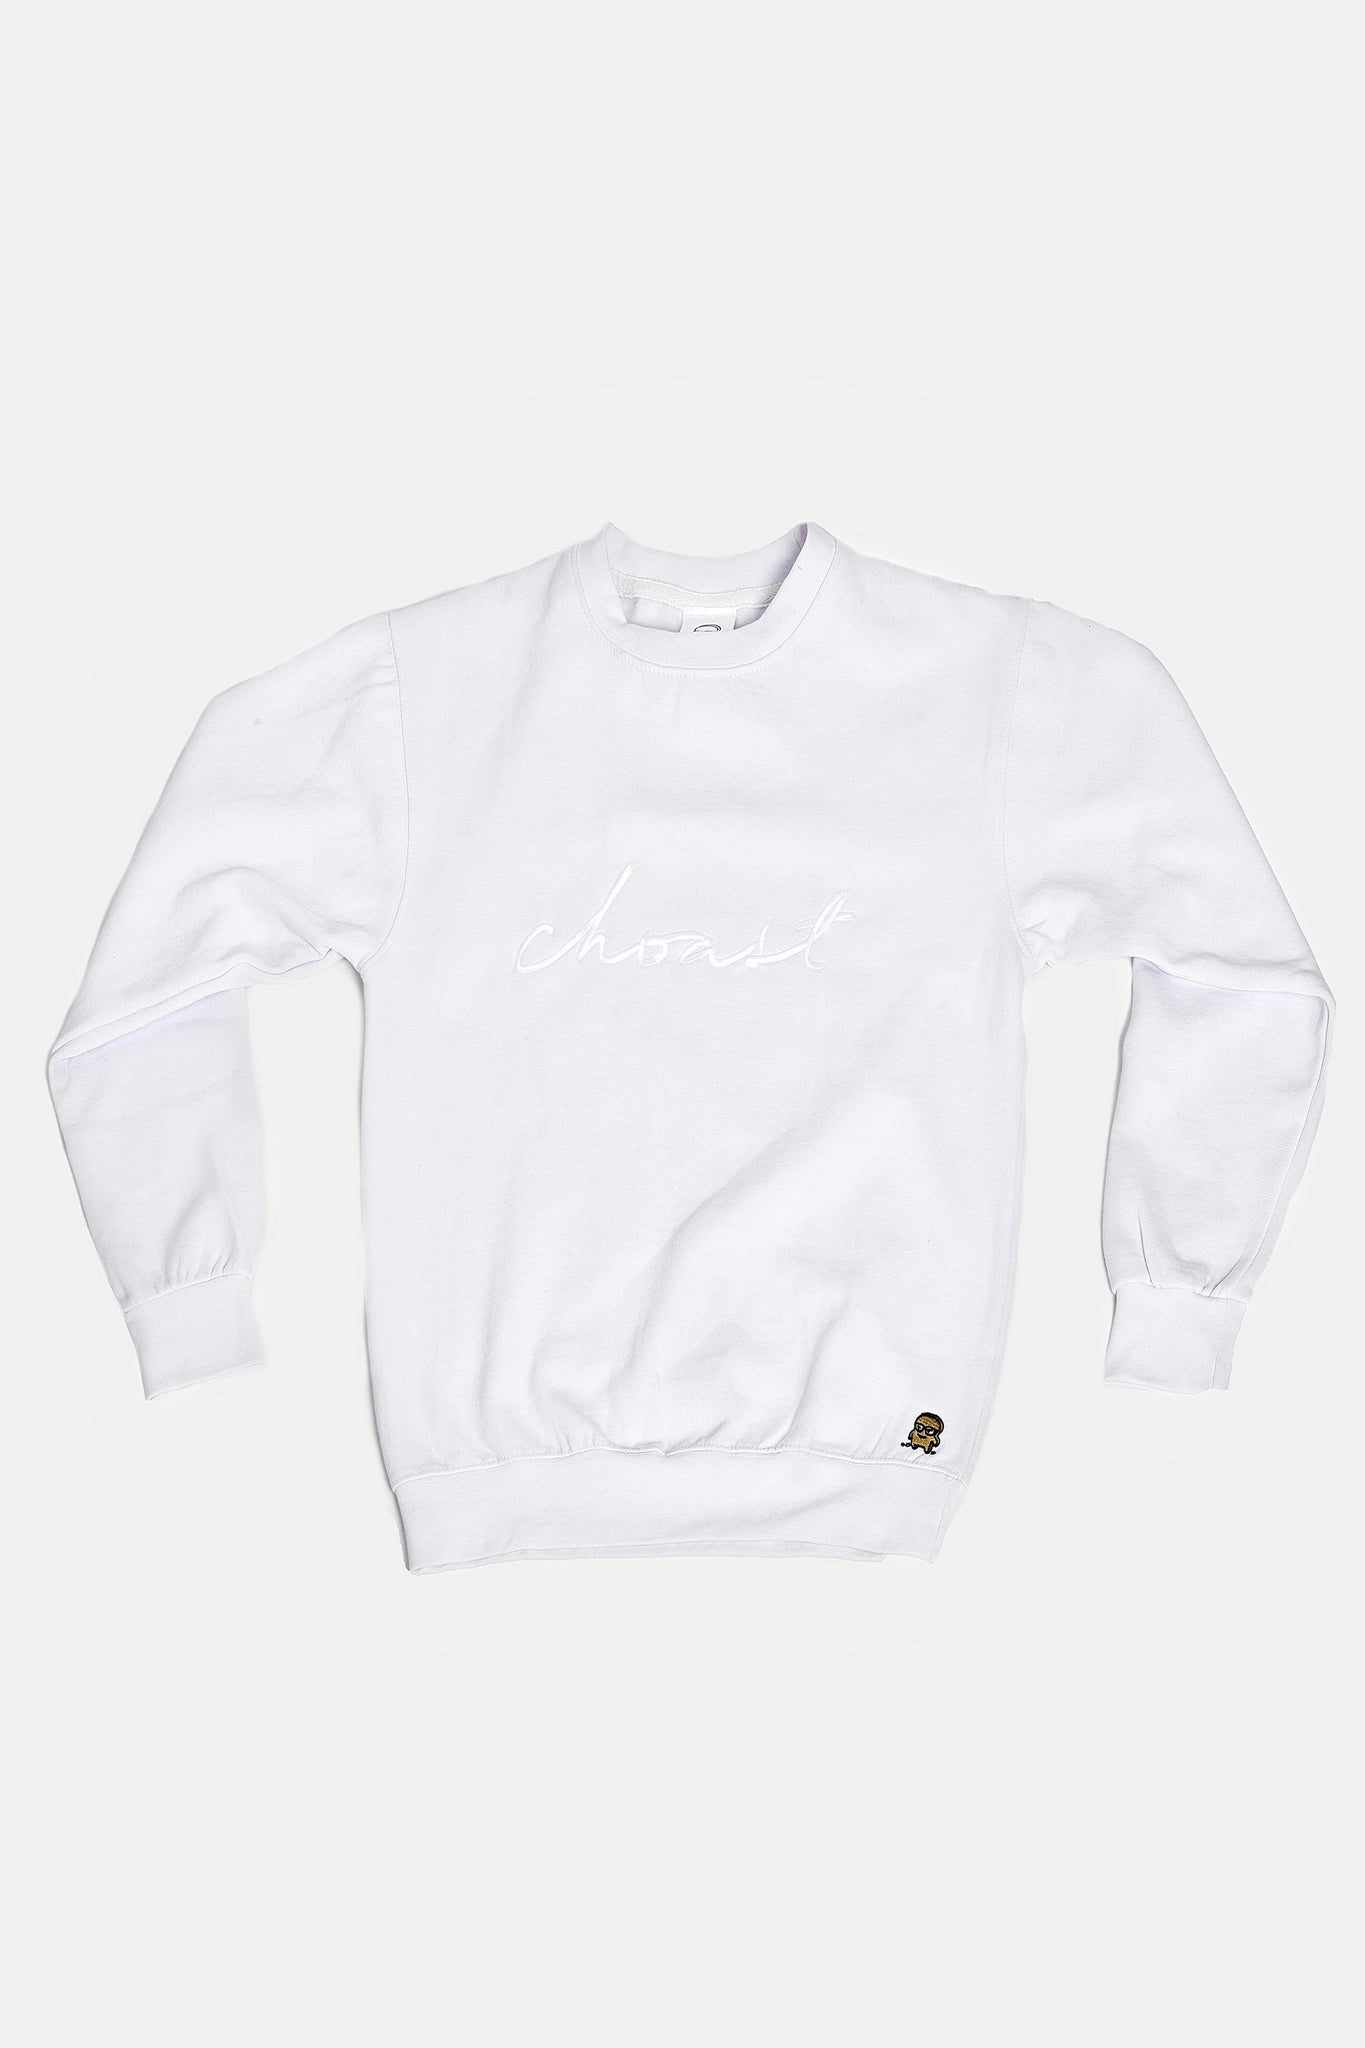 WHITE CREWNECK - Choast